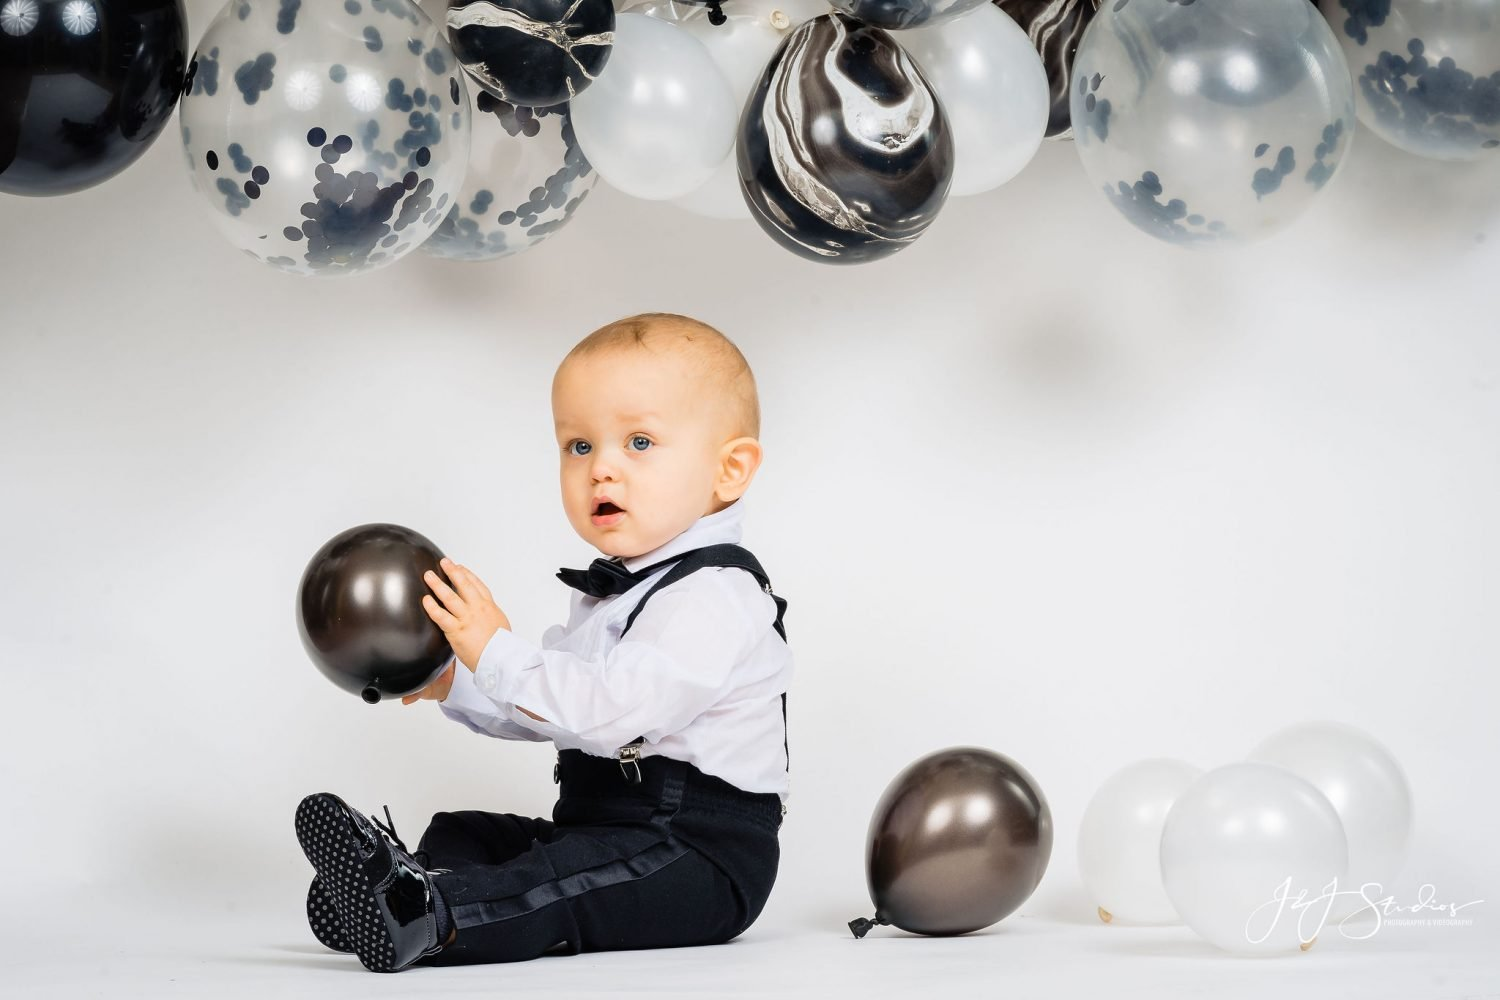 Cute baby playing with balloon